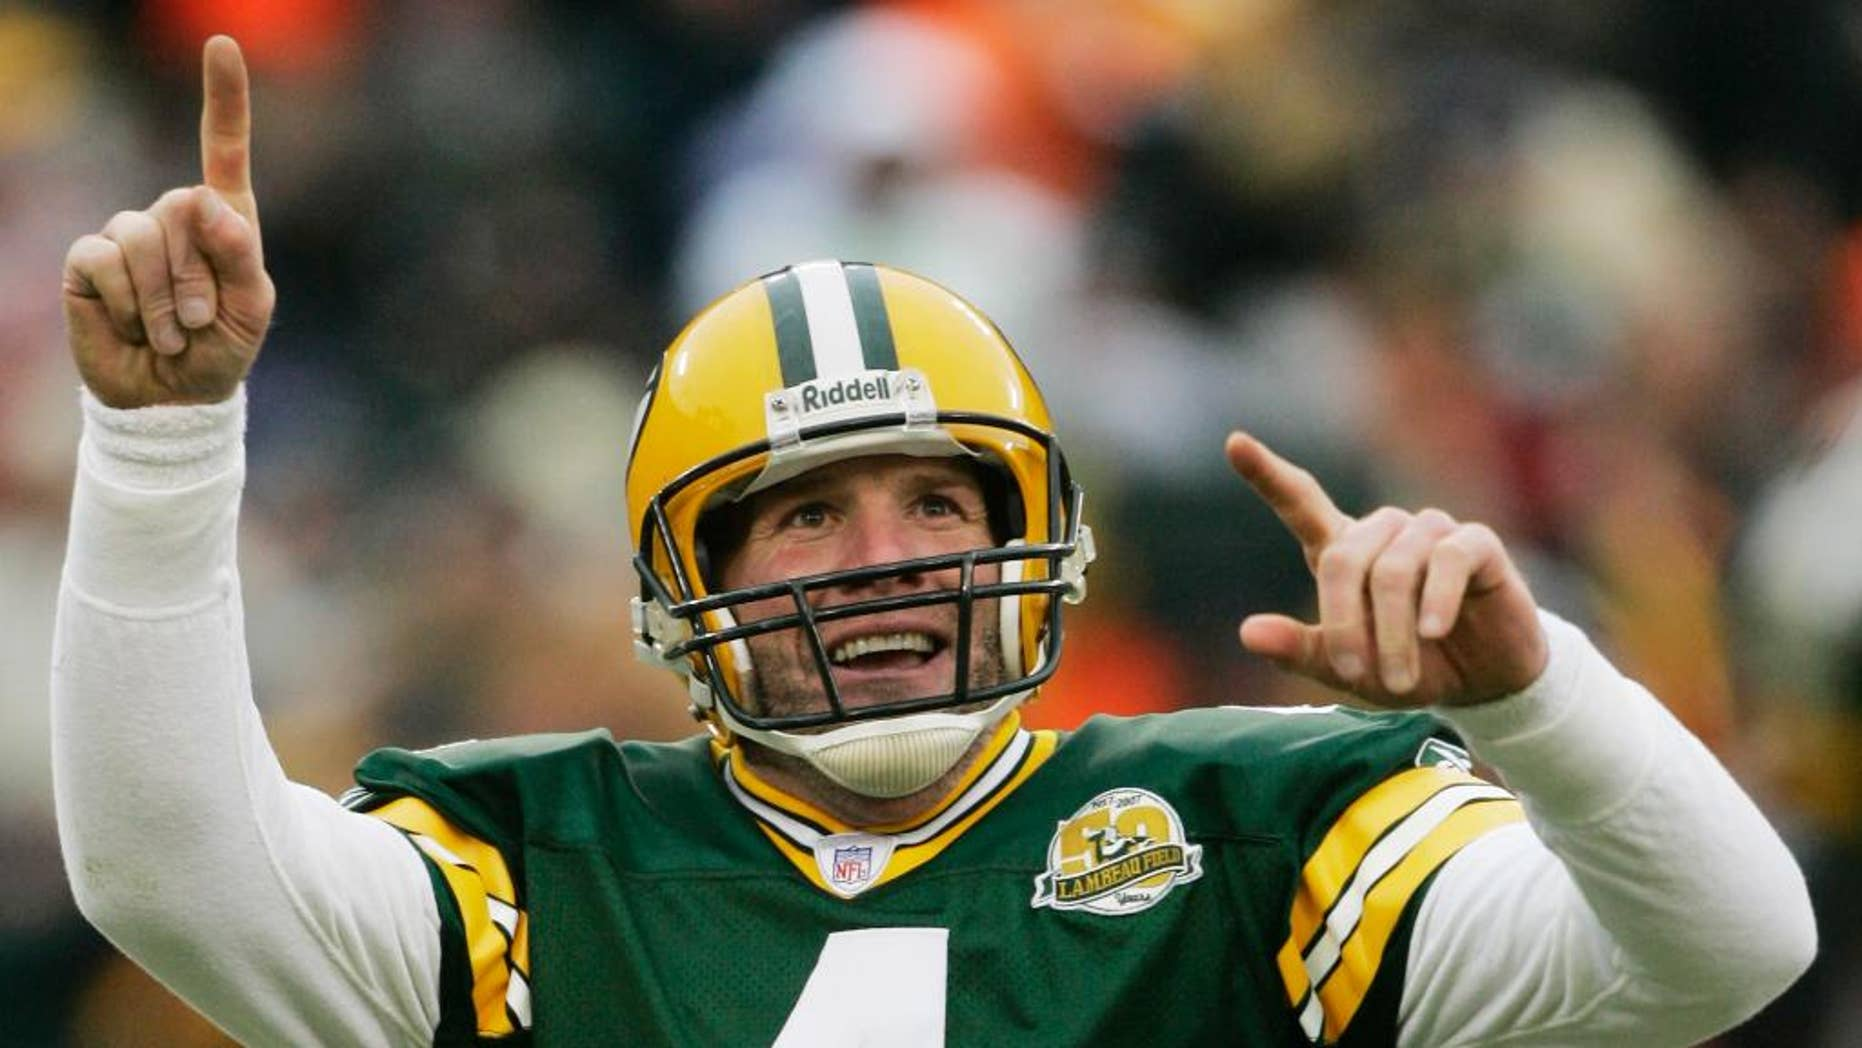 FILE - In this Dec. 9, 2007 file photo, Green Bay Packers quarterback Brett Favre reacts to a 46-yard touchdown pass to tight end Donald Lee during the second half of an NFL football game against the Oakland Raiders in Green Bay, Wis.  Favre will be inducted into the team's Hall of Fame and have his jersey retired next year. Favre writes on his official website that it will be an honor to have his name placed among others such Bart Starr, Curly Lambeau, Ray Nitschke and Vince Lombardi, to name a few.  (AP Photo/Morry Gash, File)